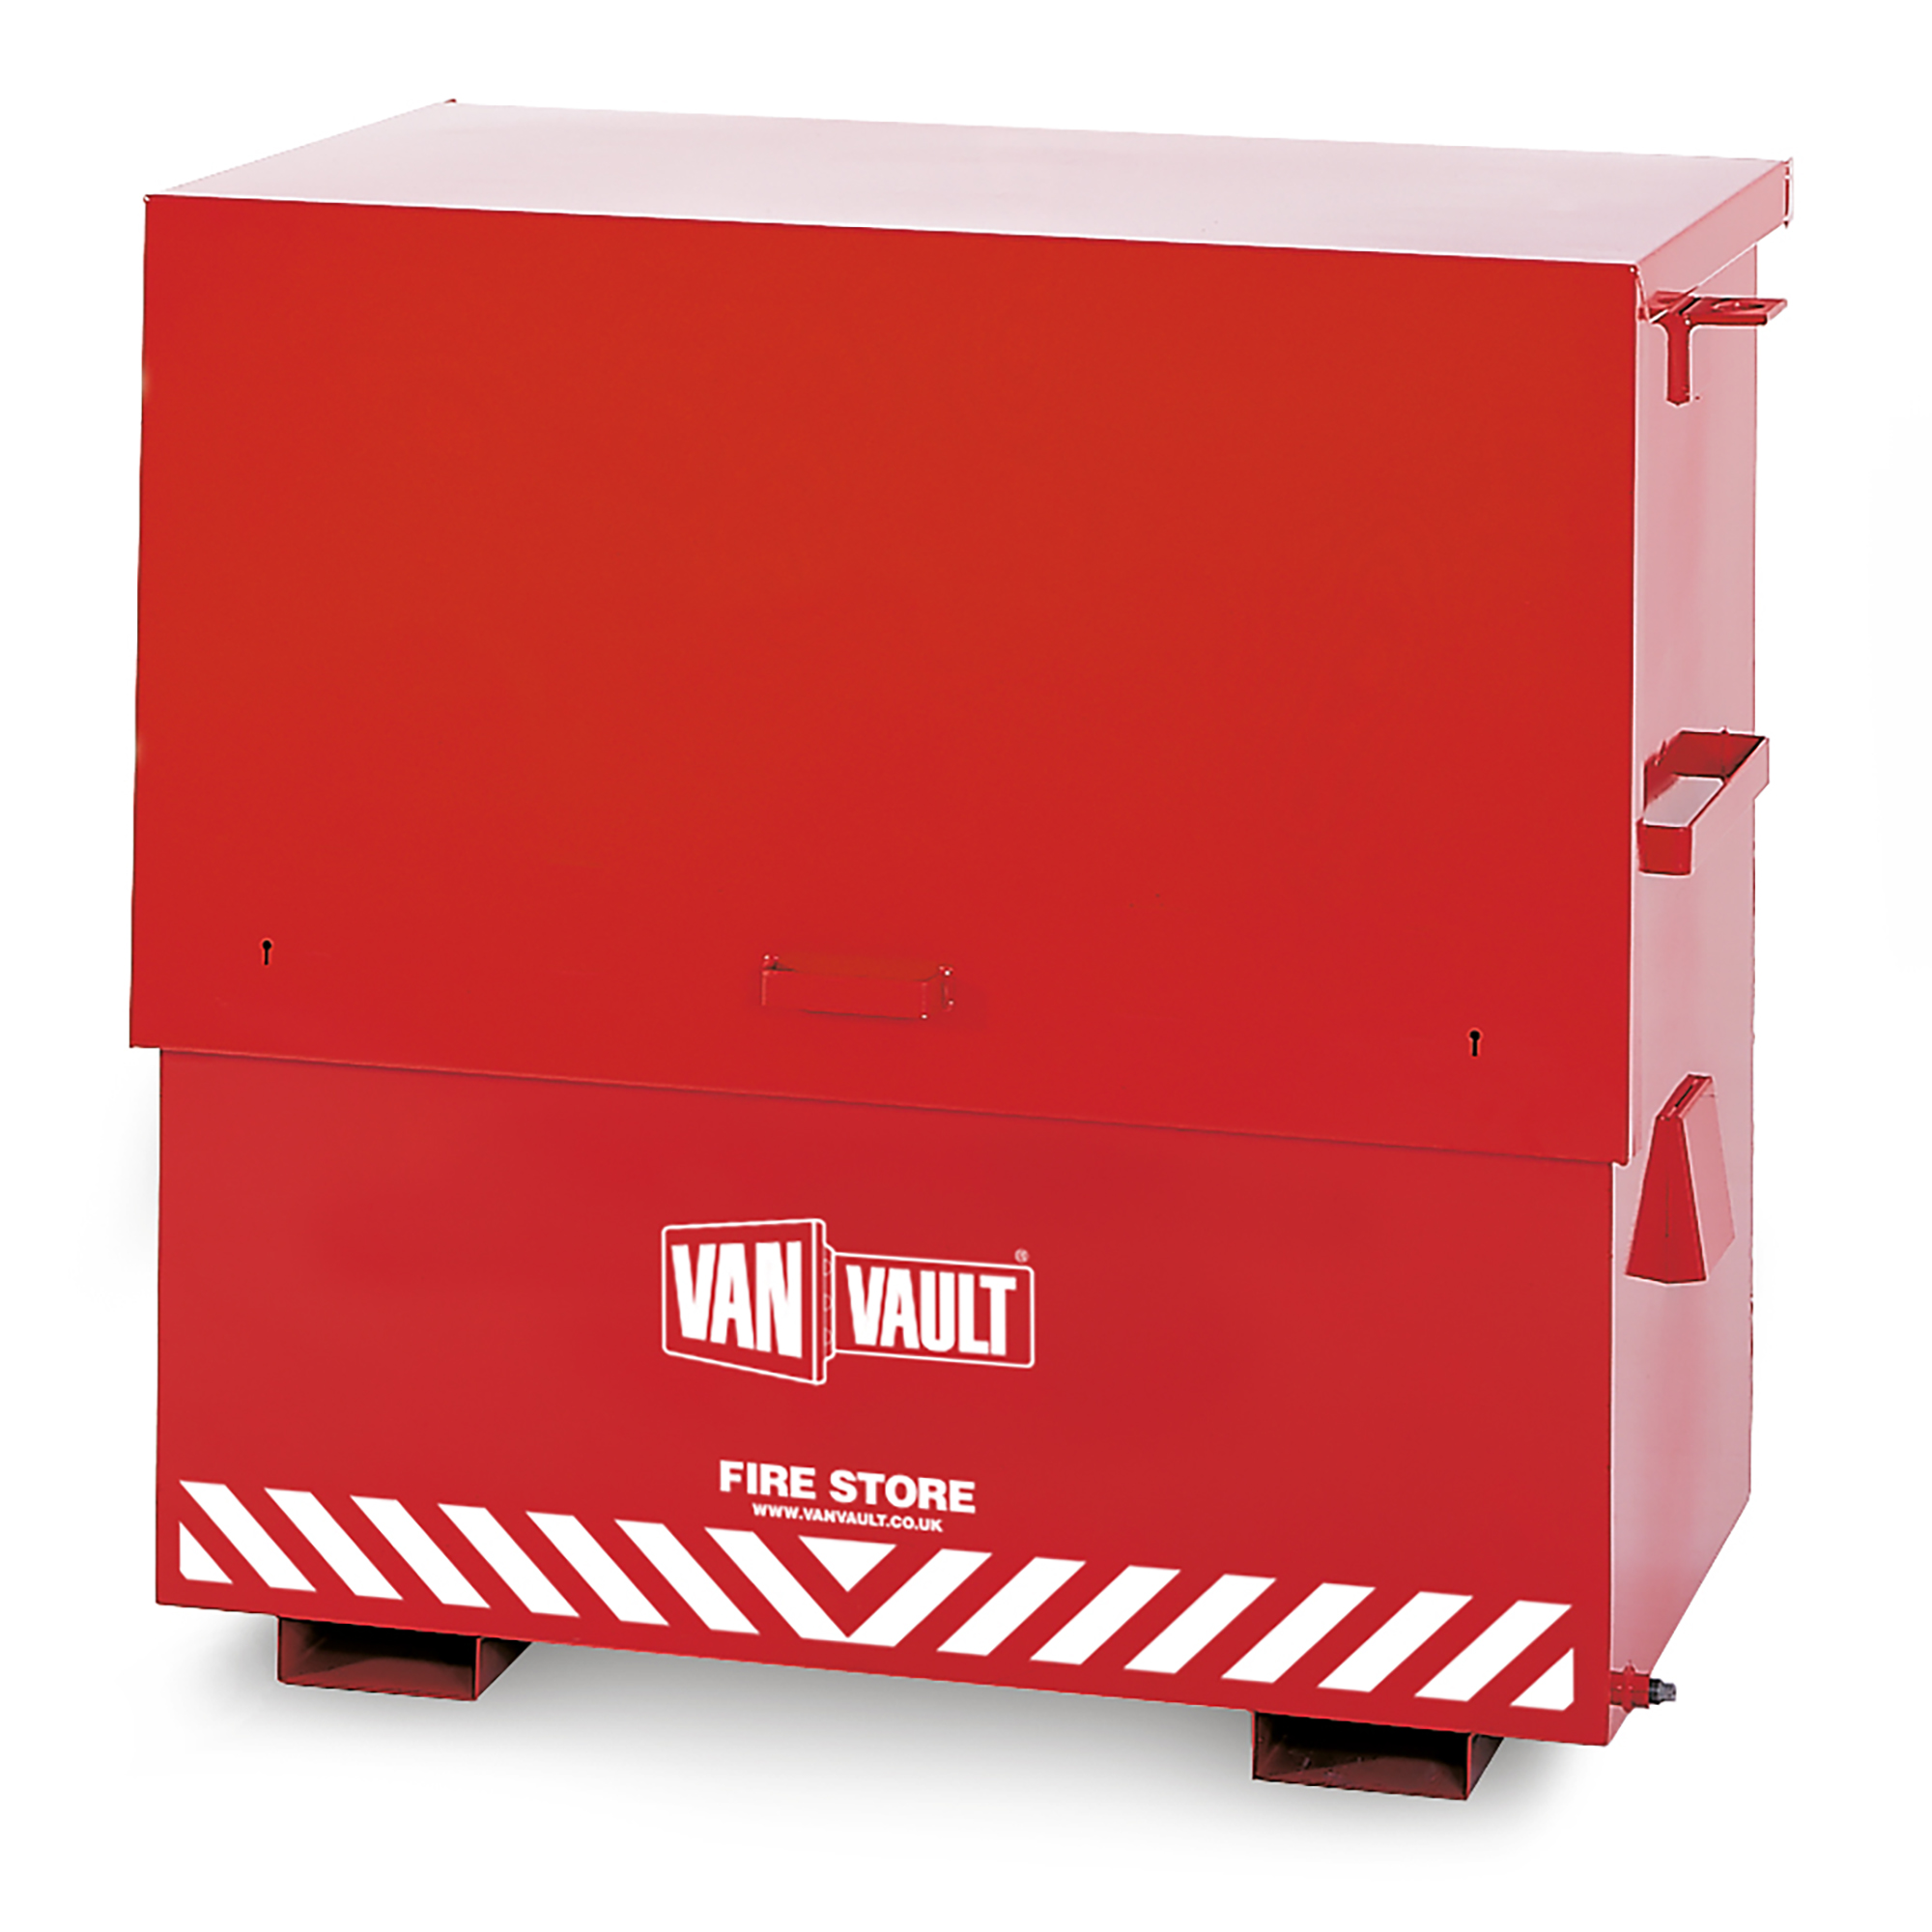 Closed red sheet steel Van Vault fire store with internal shelf, brass overspill tap and white Van Vault branding